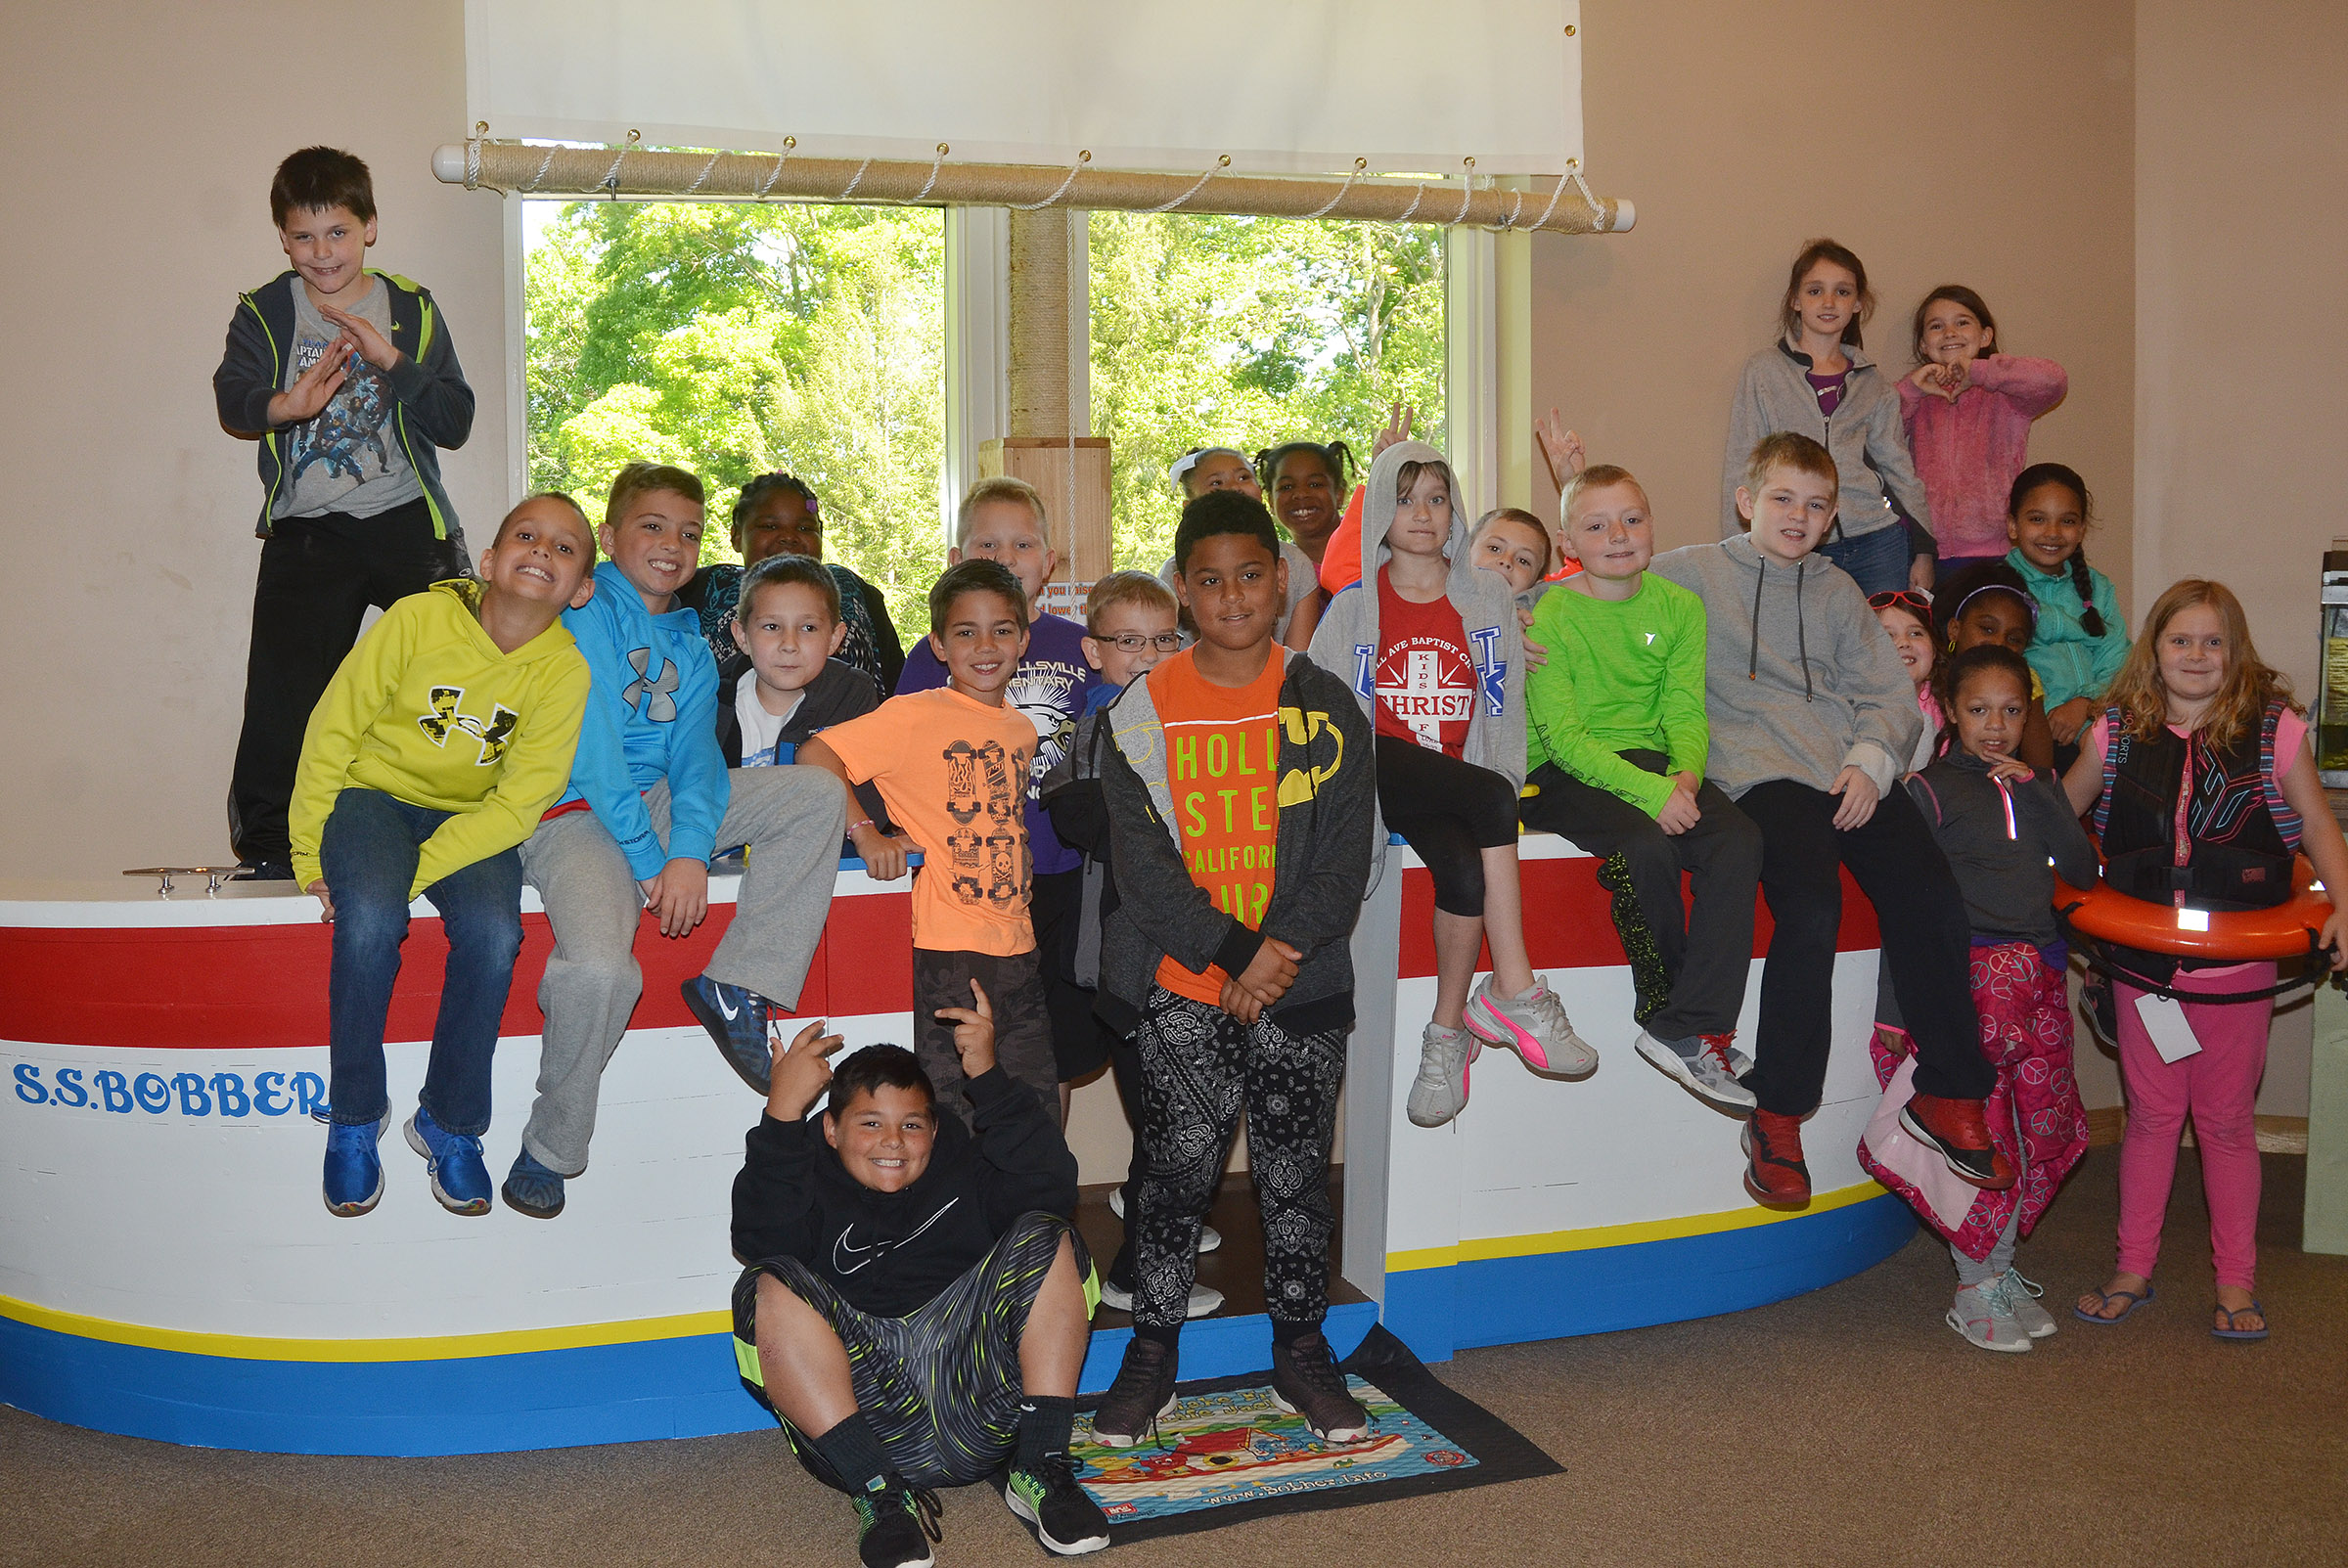 CES third-graders in Hannah Jones's class pose for a photo aboard the S.S. Bobber at the Green River Lake Visitor Center.